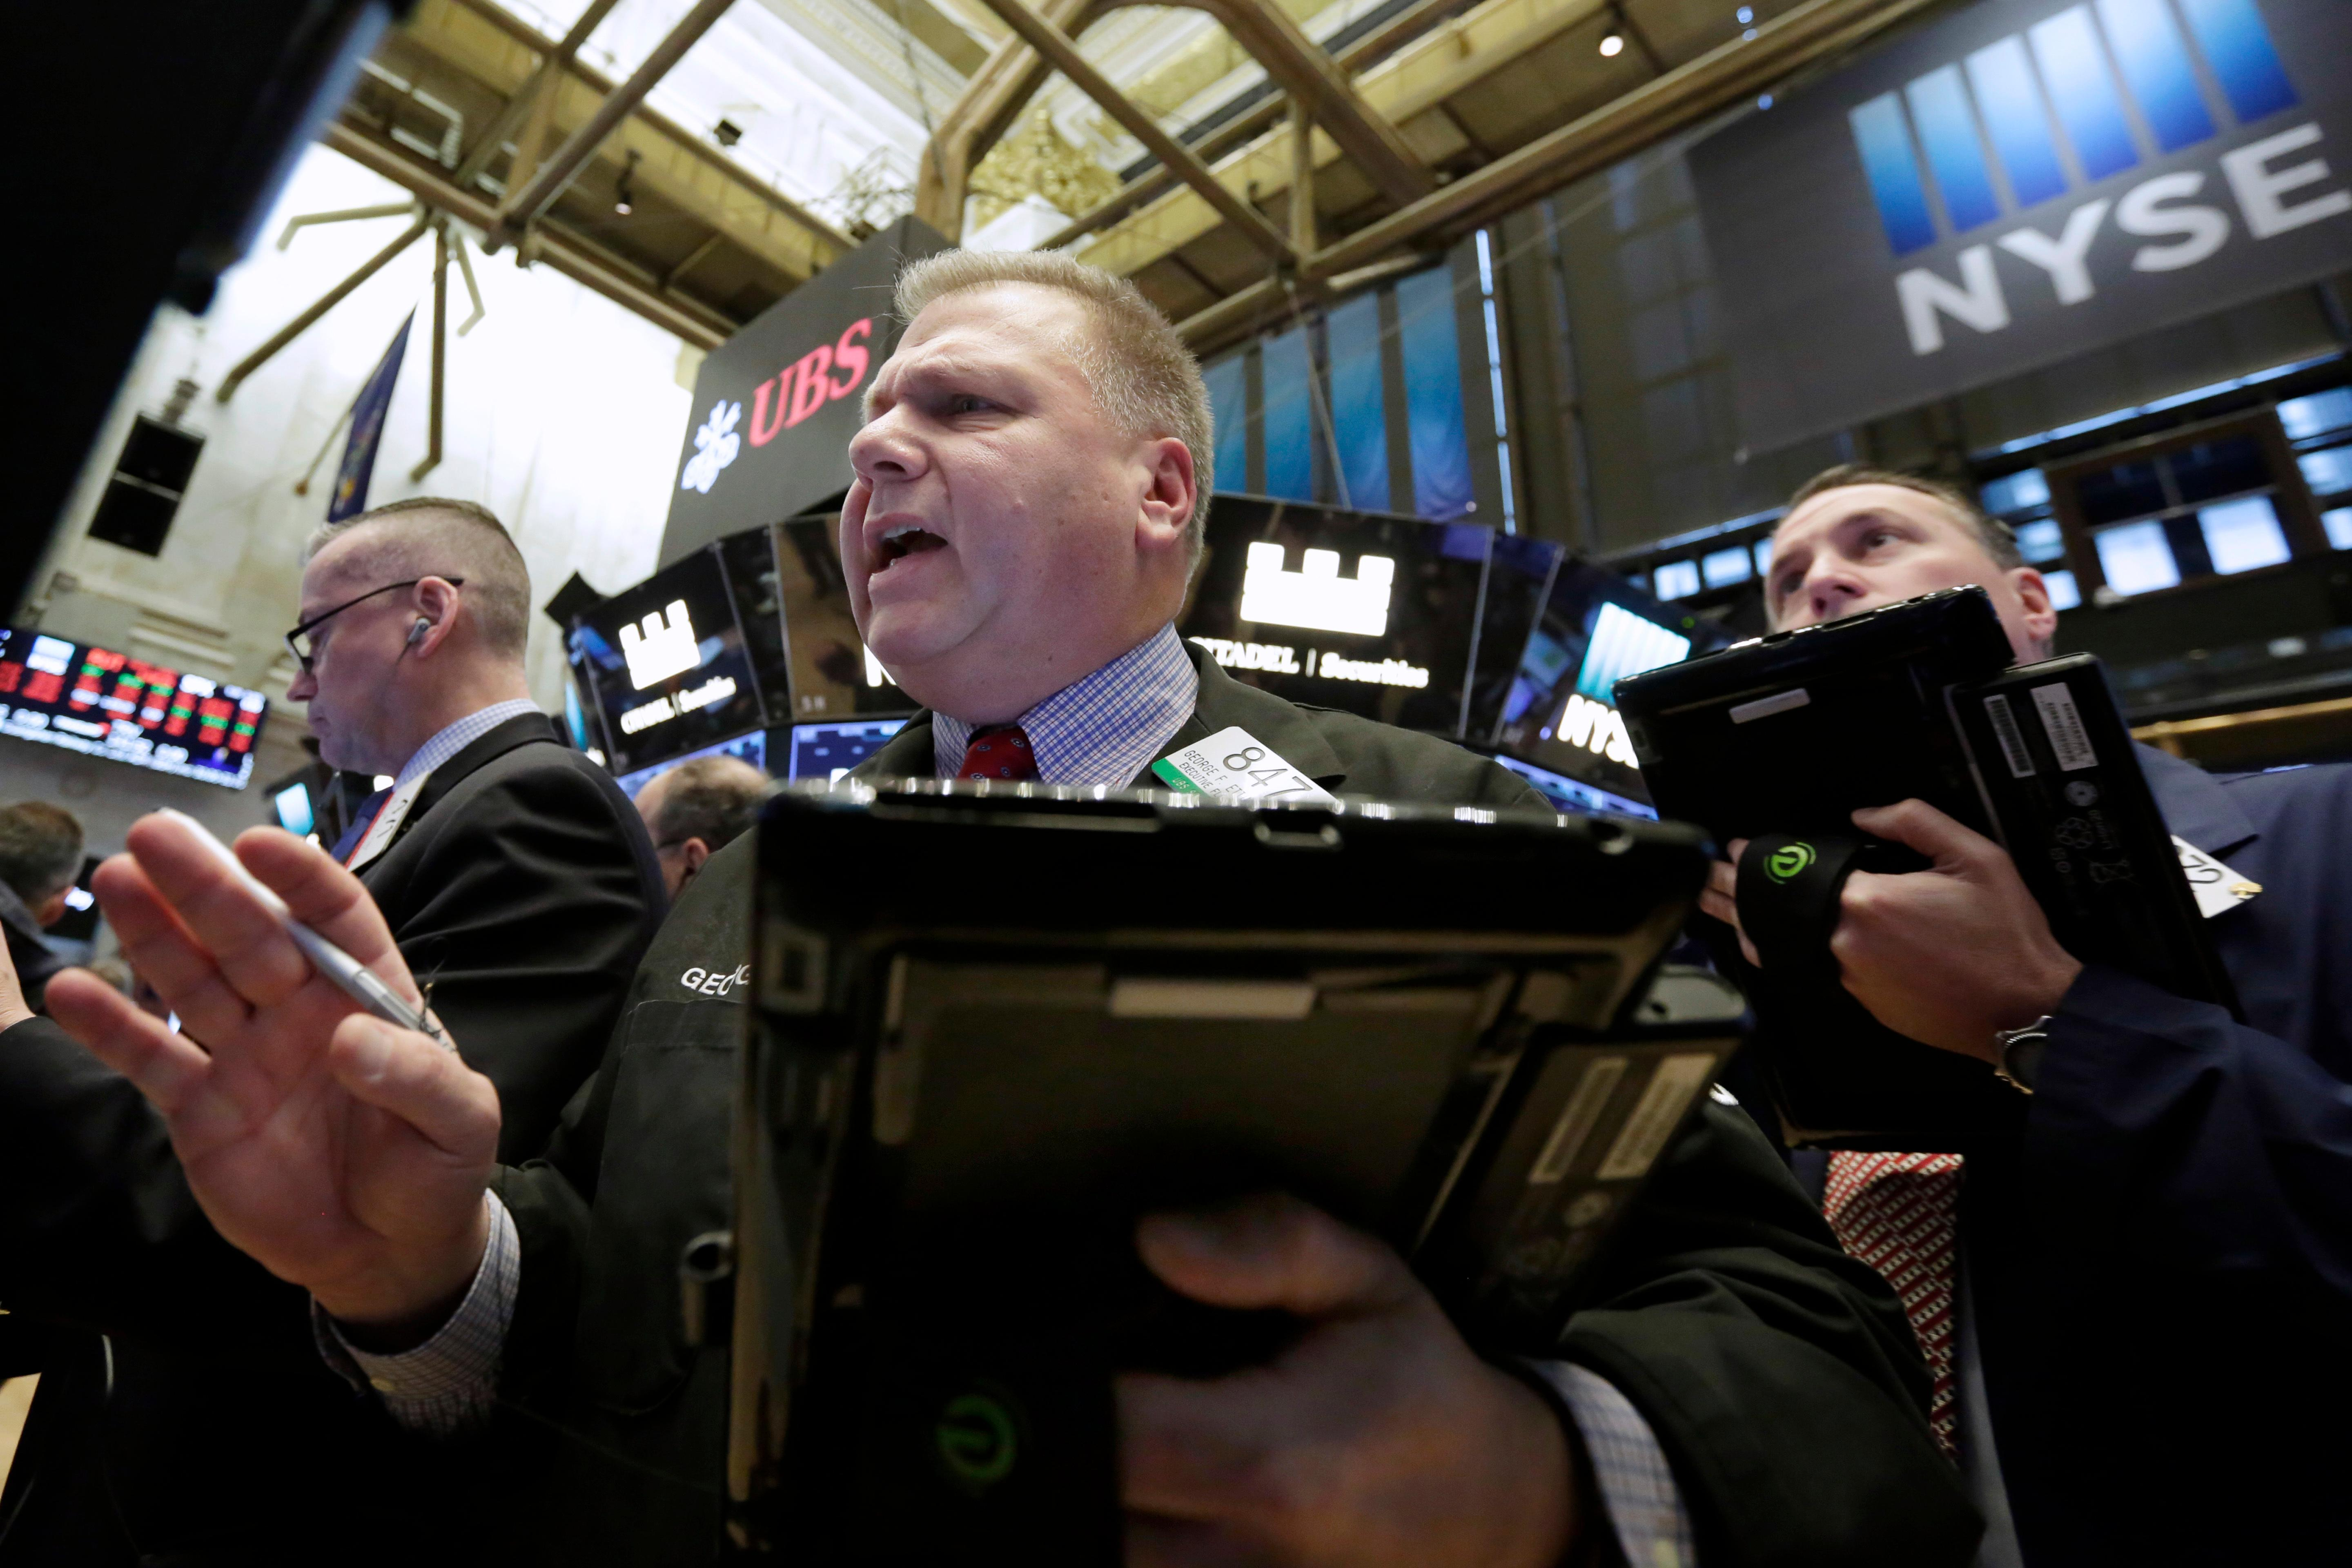 Trader George Ettinger, center, works on the floor of the New York Stock Exchange, Tuesday, Feb. 6, 2018. The Dow Jones industrial average fell as much as 500 points in early trading, bringing the index down 10 percent from the record high it reached on Jan. 26. The DJIA quickly recovered much of that loss. (AP Photo/Richard Drew)